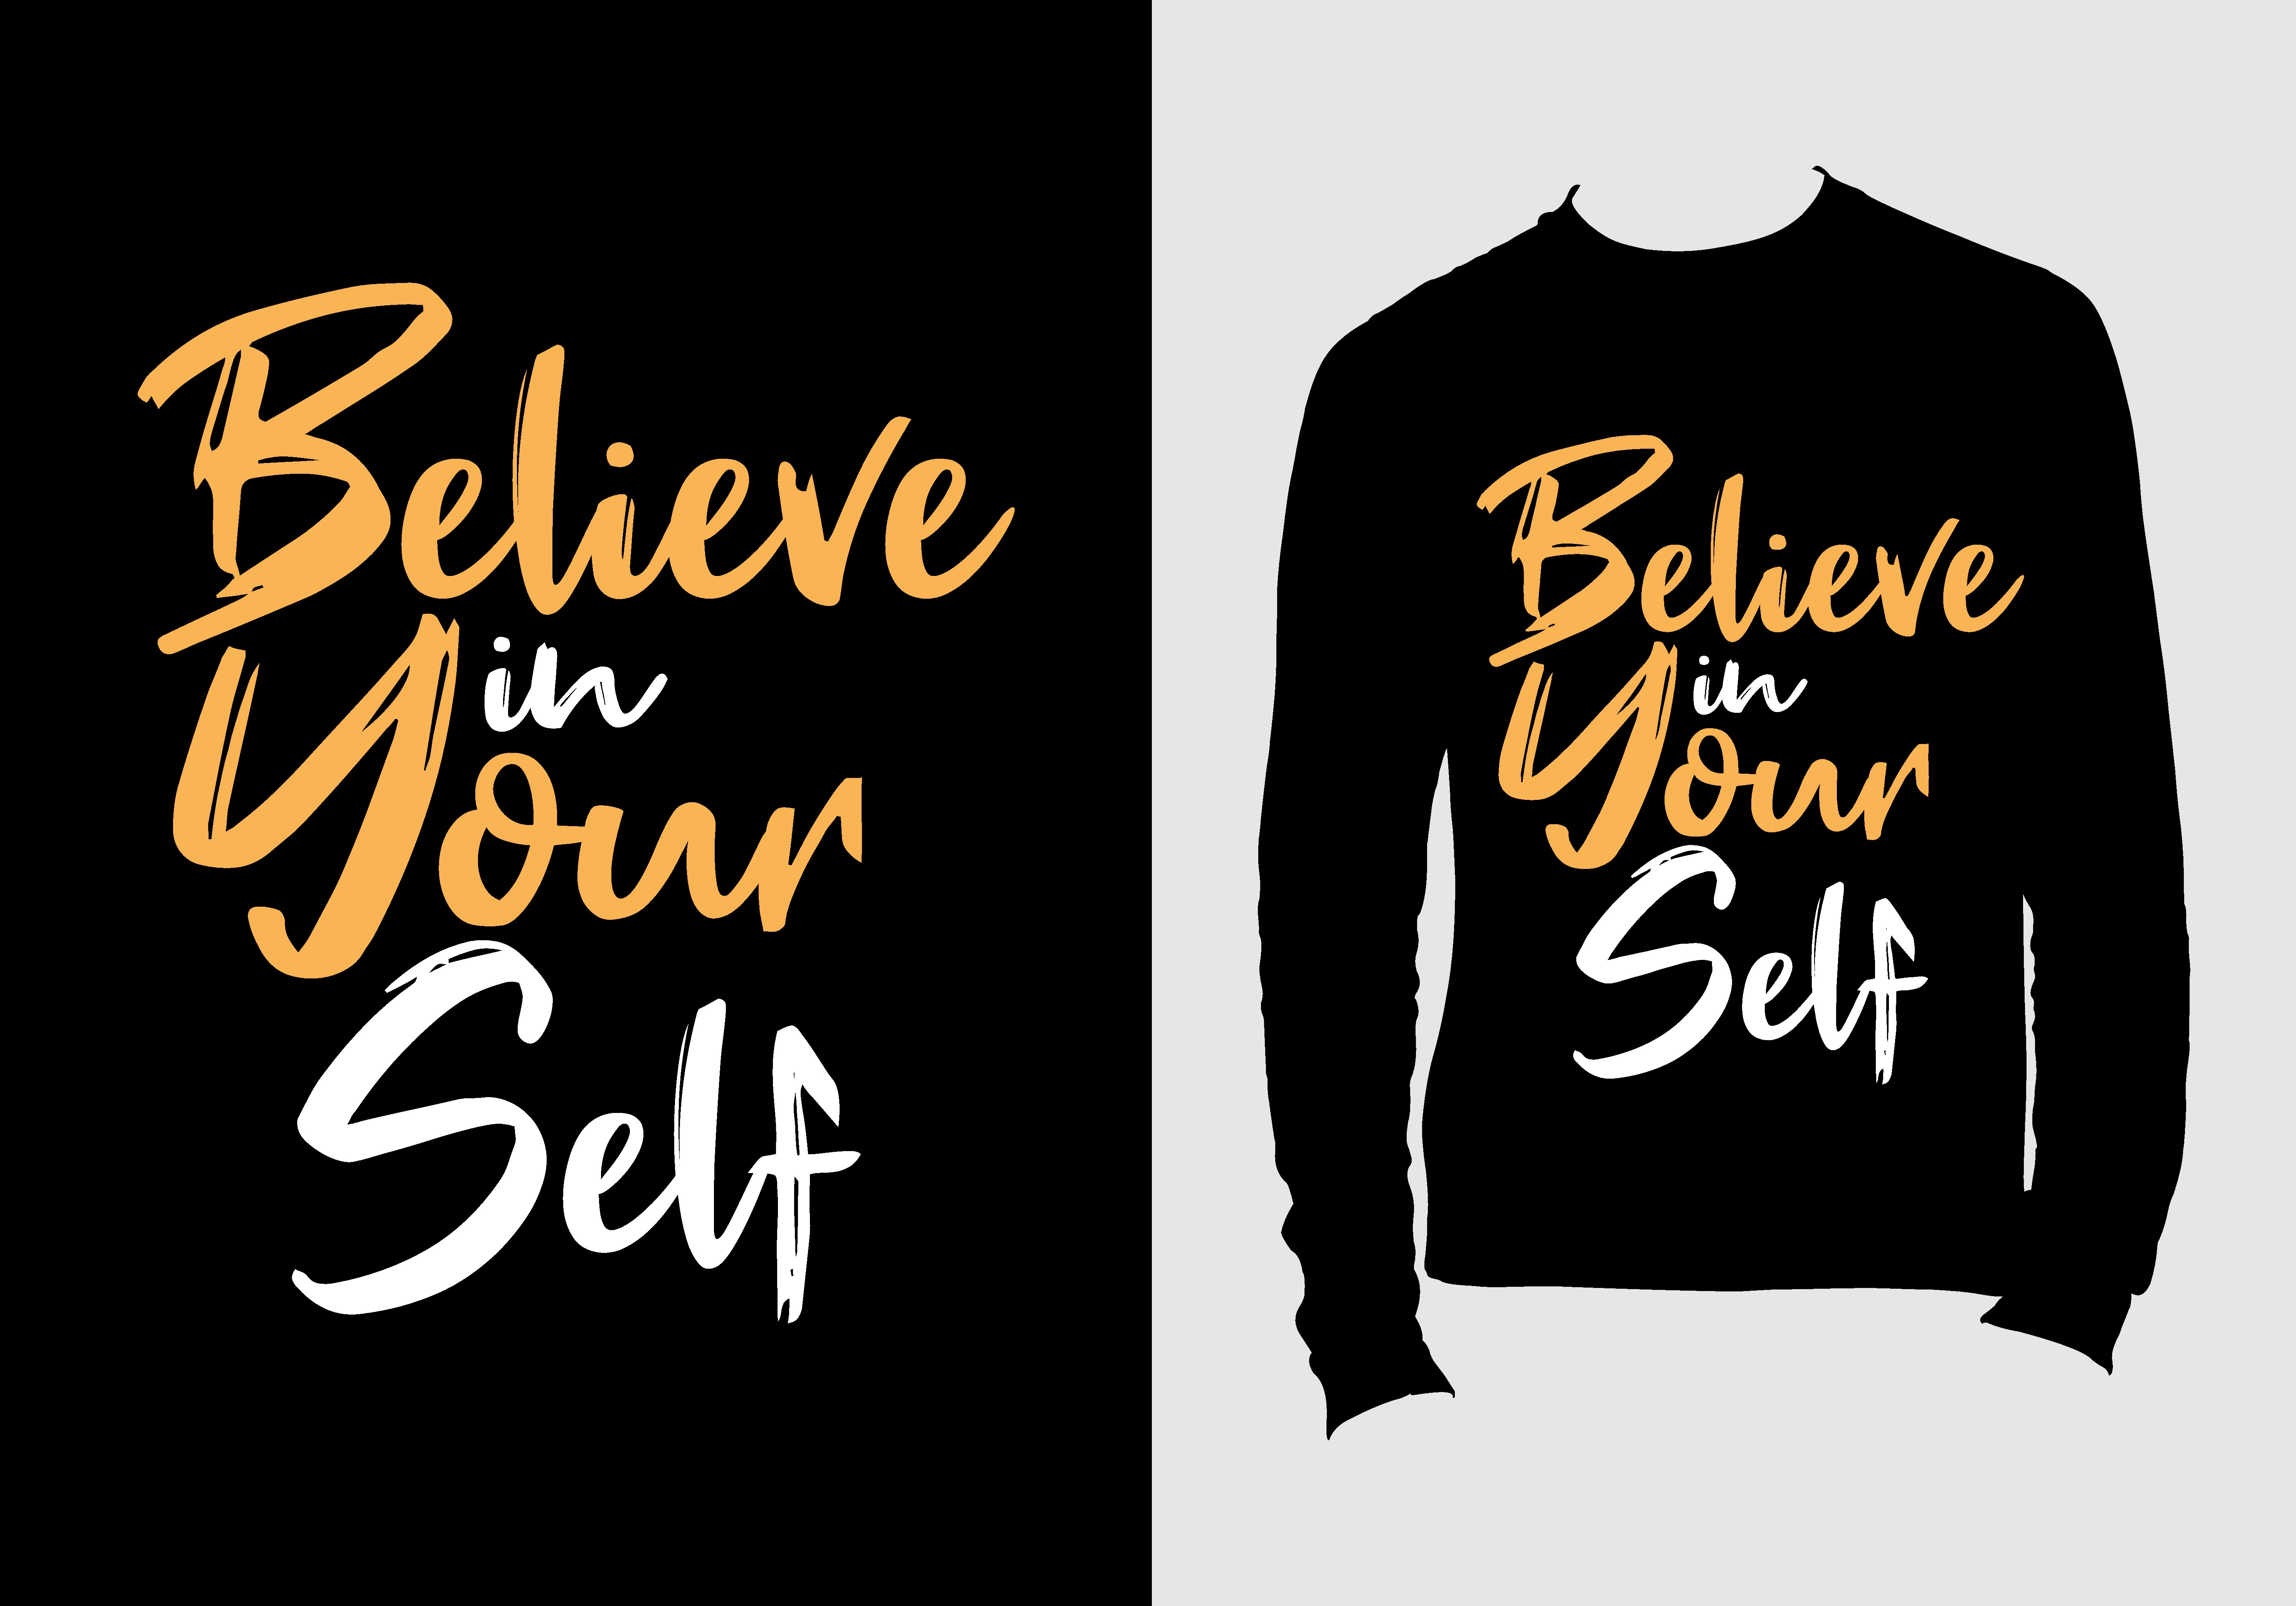 Download Free T Shirt Design With Motivation Quote Graphic By Chairul Ma Arif SVG Cut Files